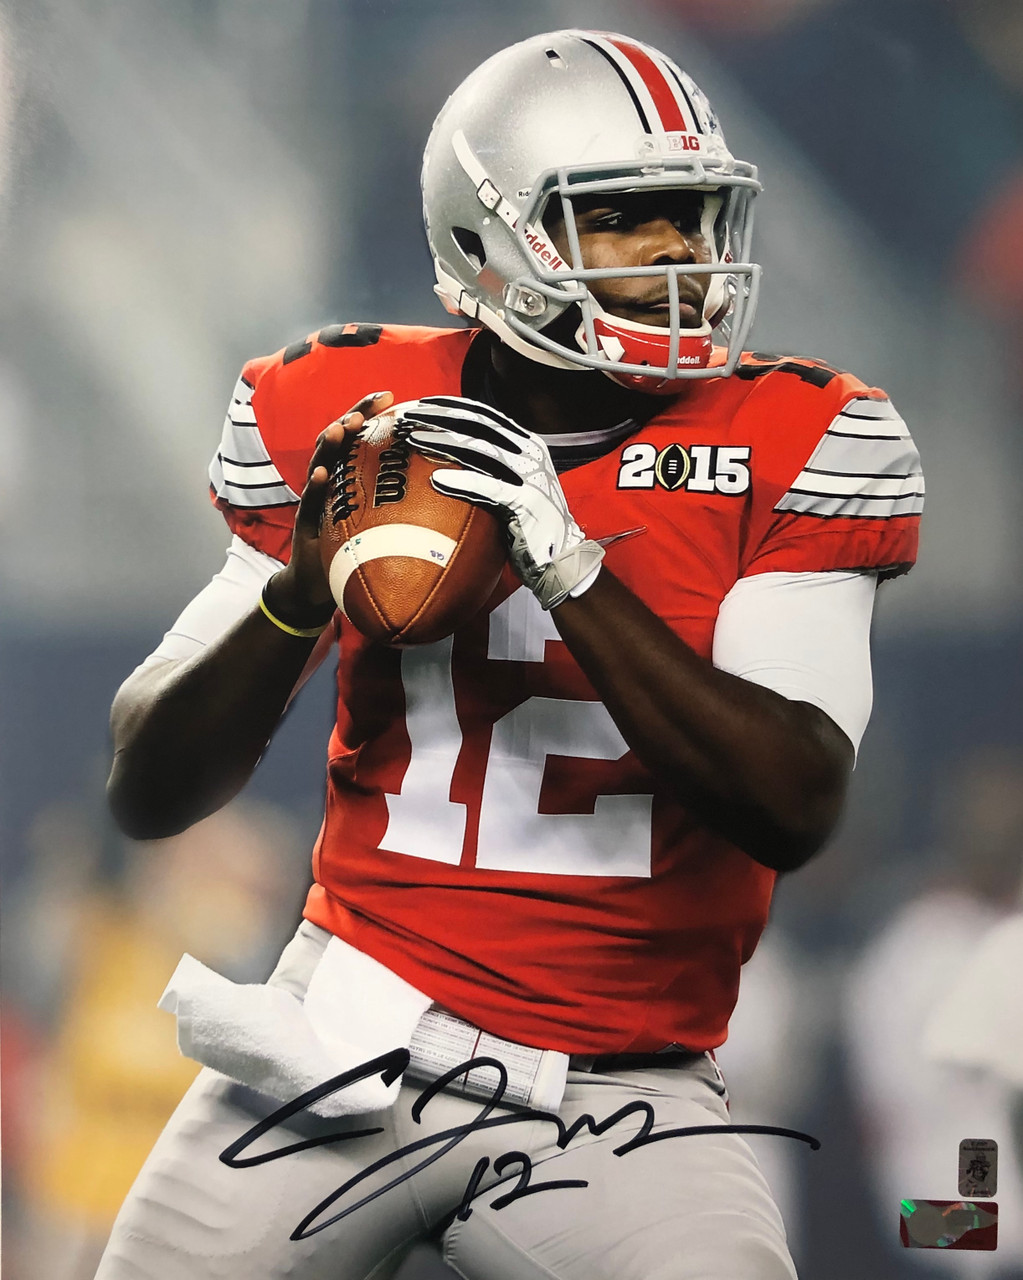 finest selection befba 5225f Cardale Jones Ohio State Buckeyes 16-1 16x20 Autographed Photo - Certified  Authentic